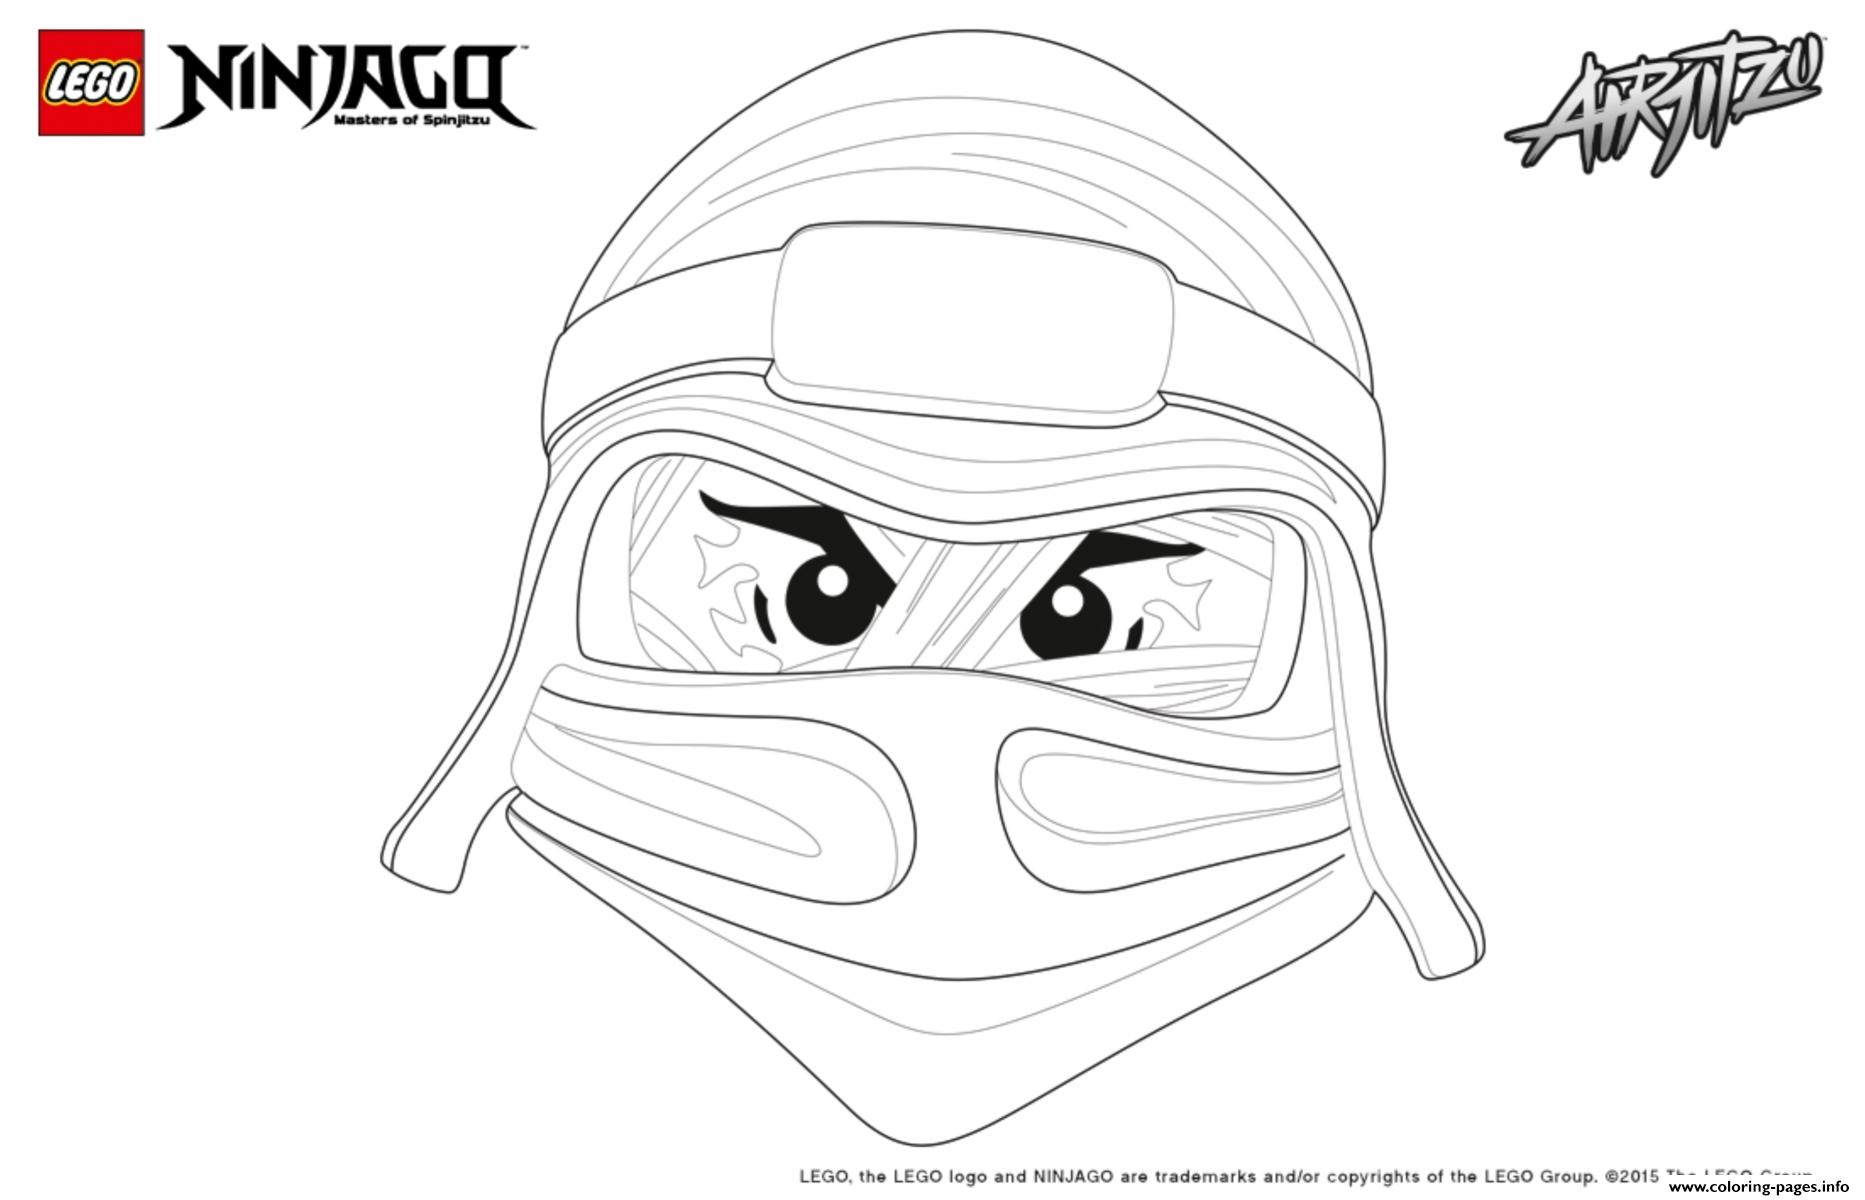 Ninjago Lego Lloyd Coloring Pages Printable